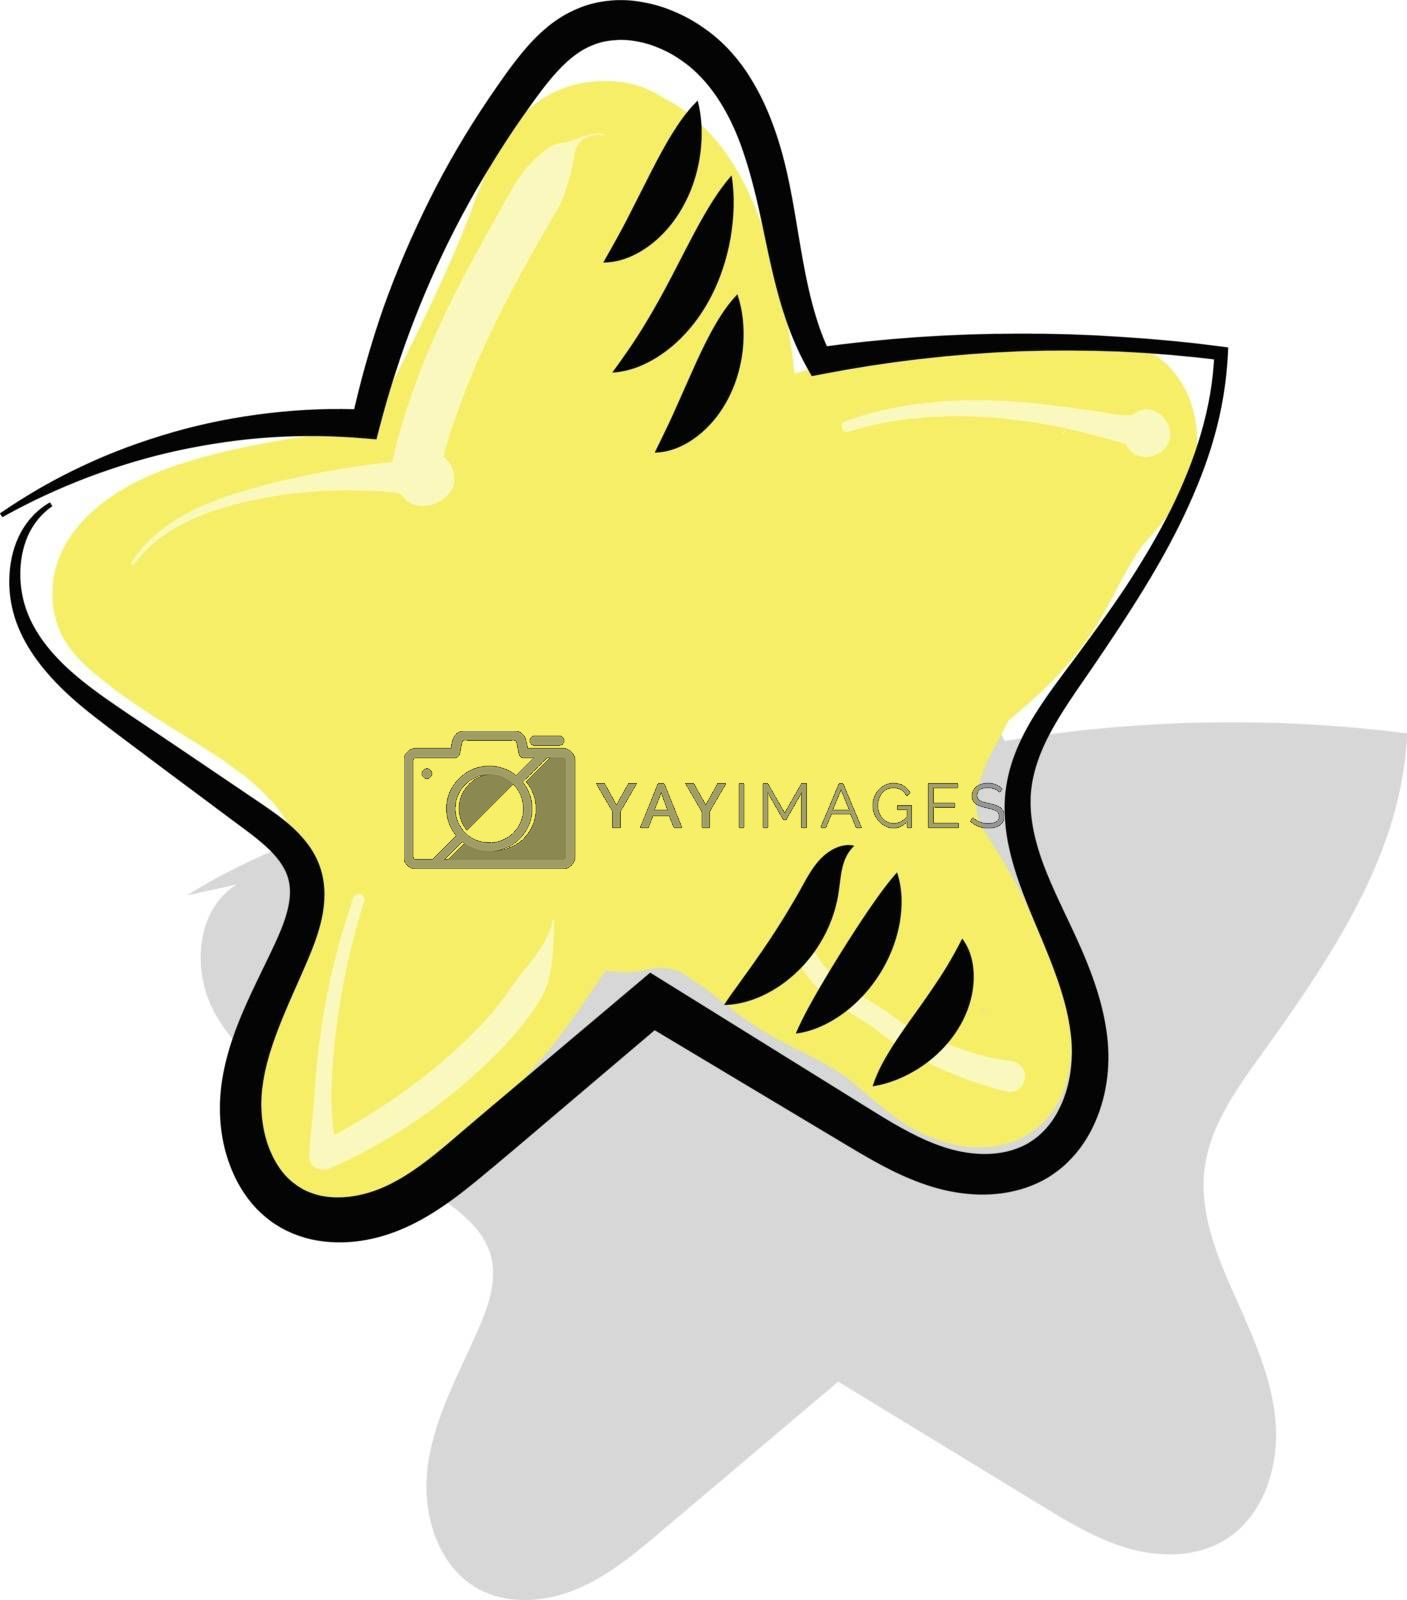 Royalty free image of Painting of a yellow-colored star vector or color illustration by Morphart